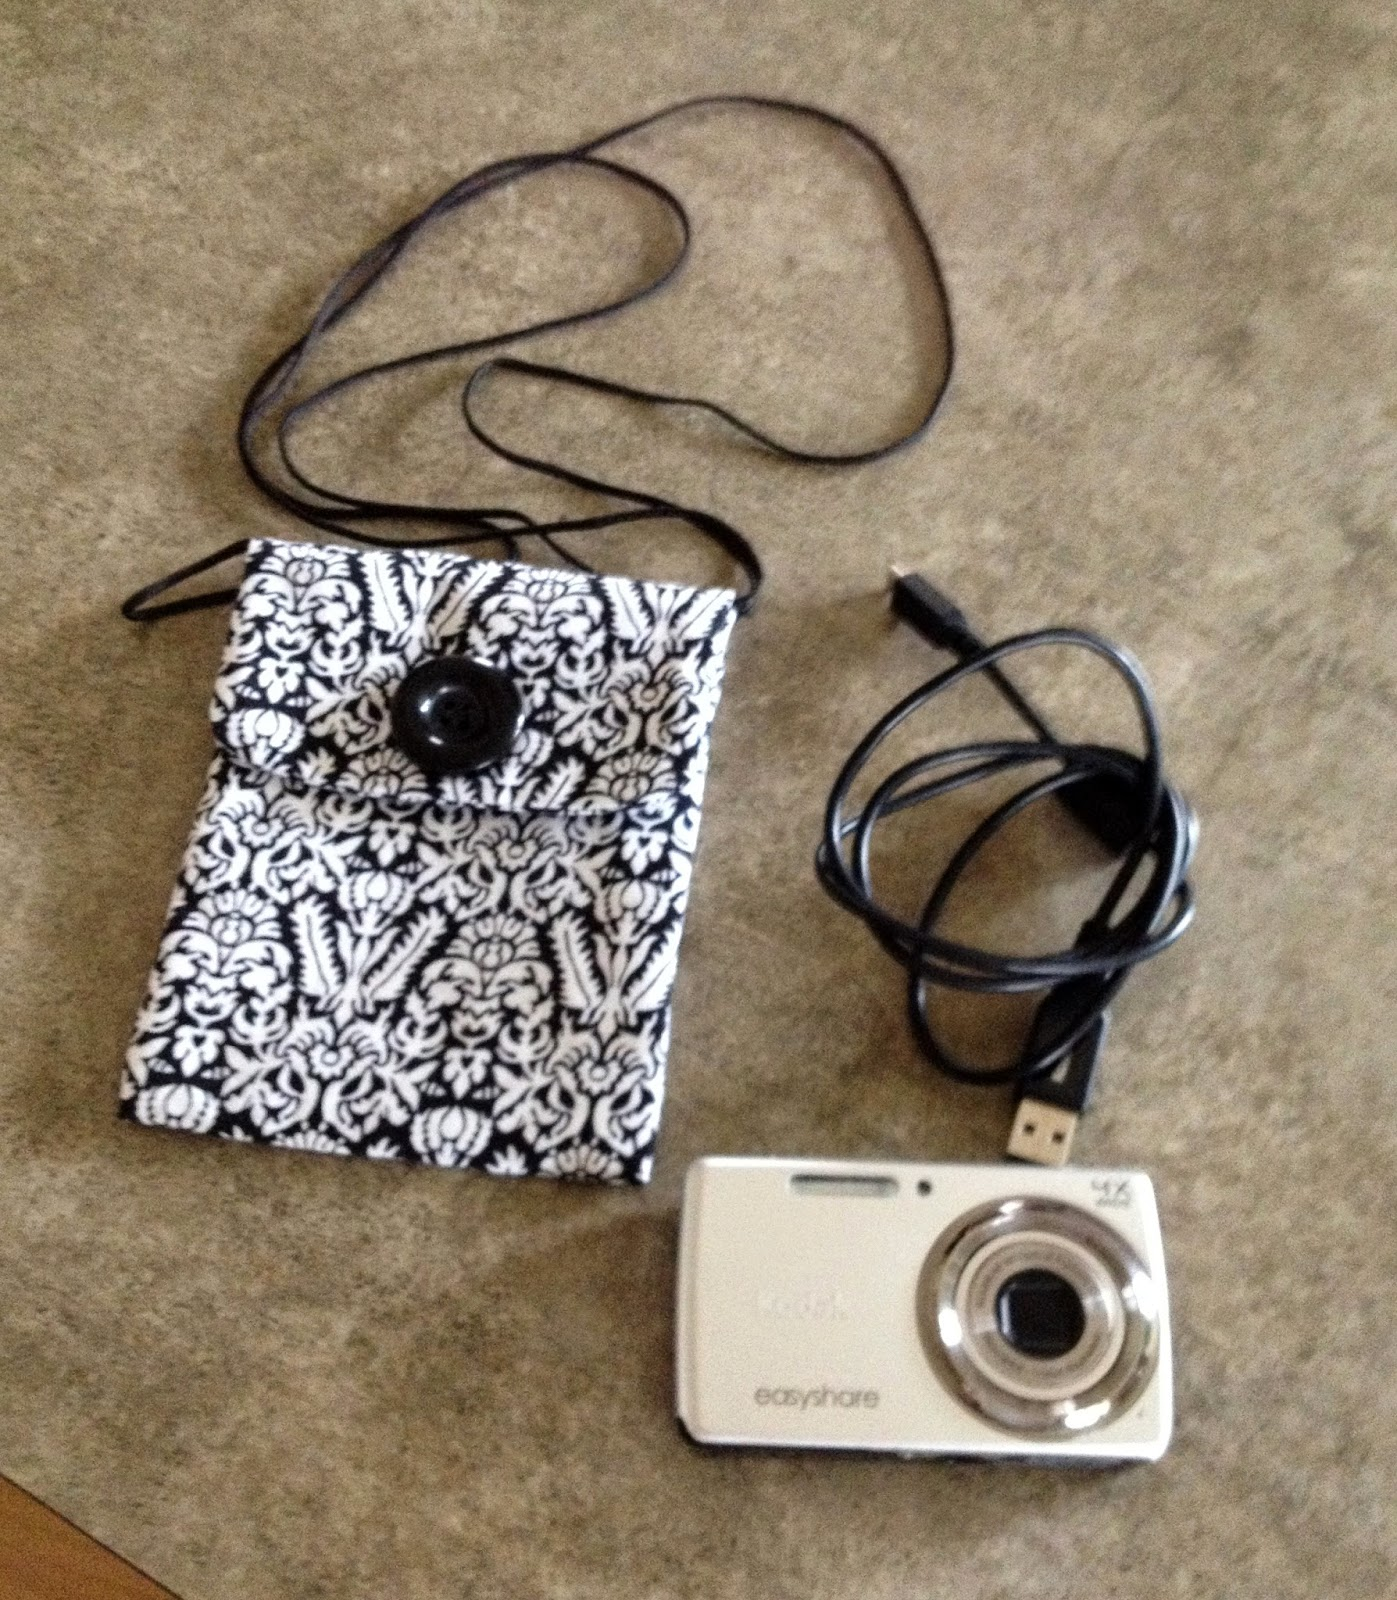 Quiltsmart Cell Phone Bag and Camera